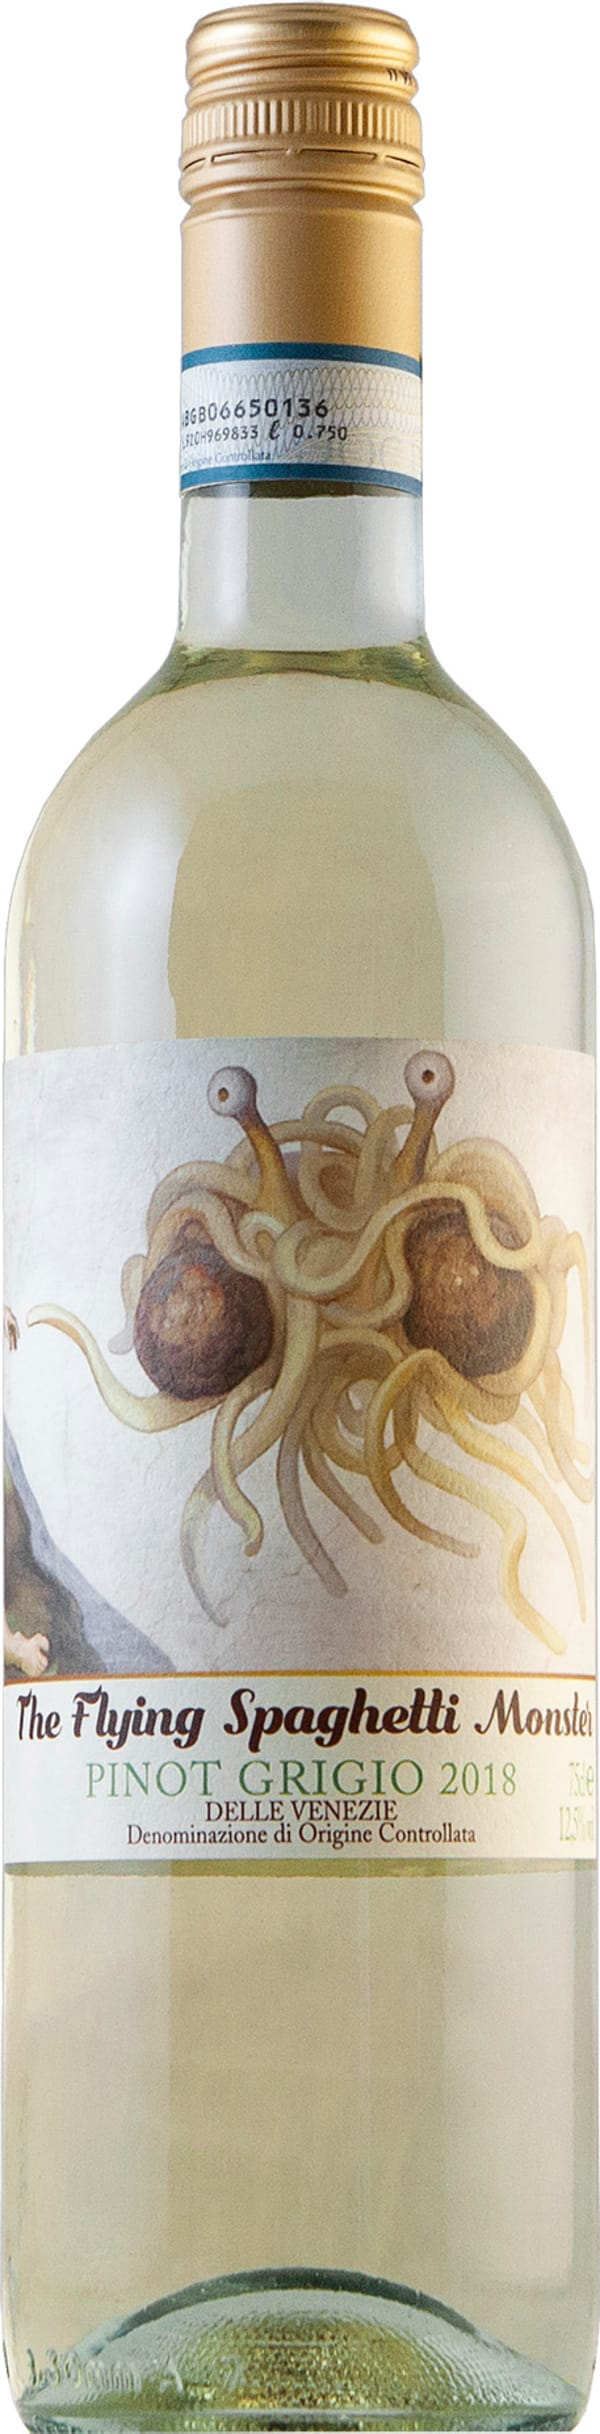 The Flying Spaghetti Monster Pinot Grigio 2018